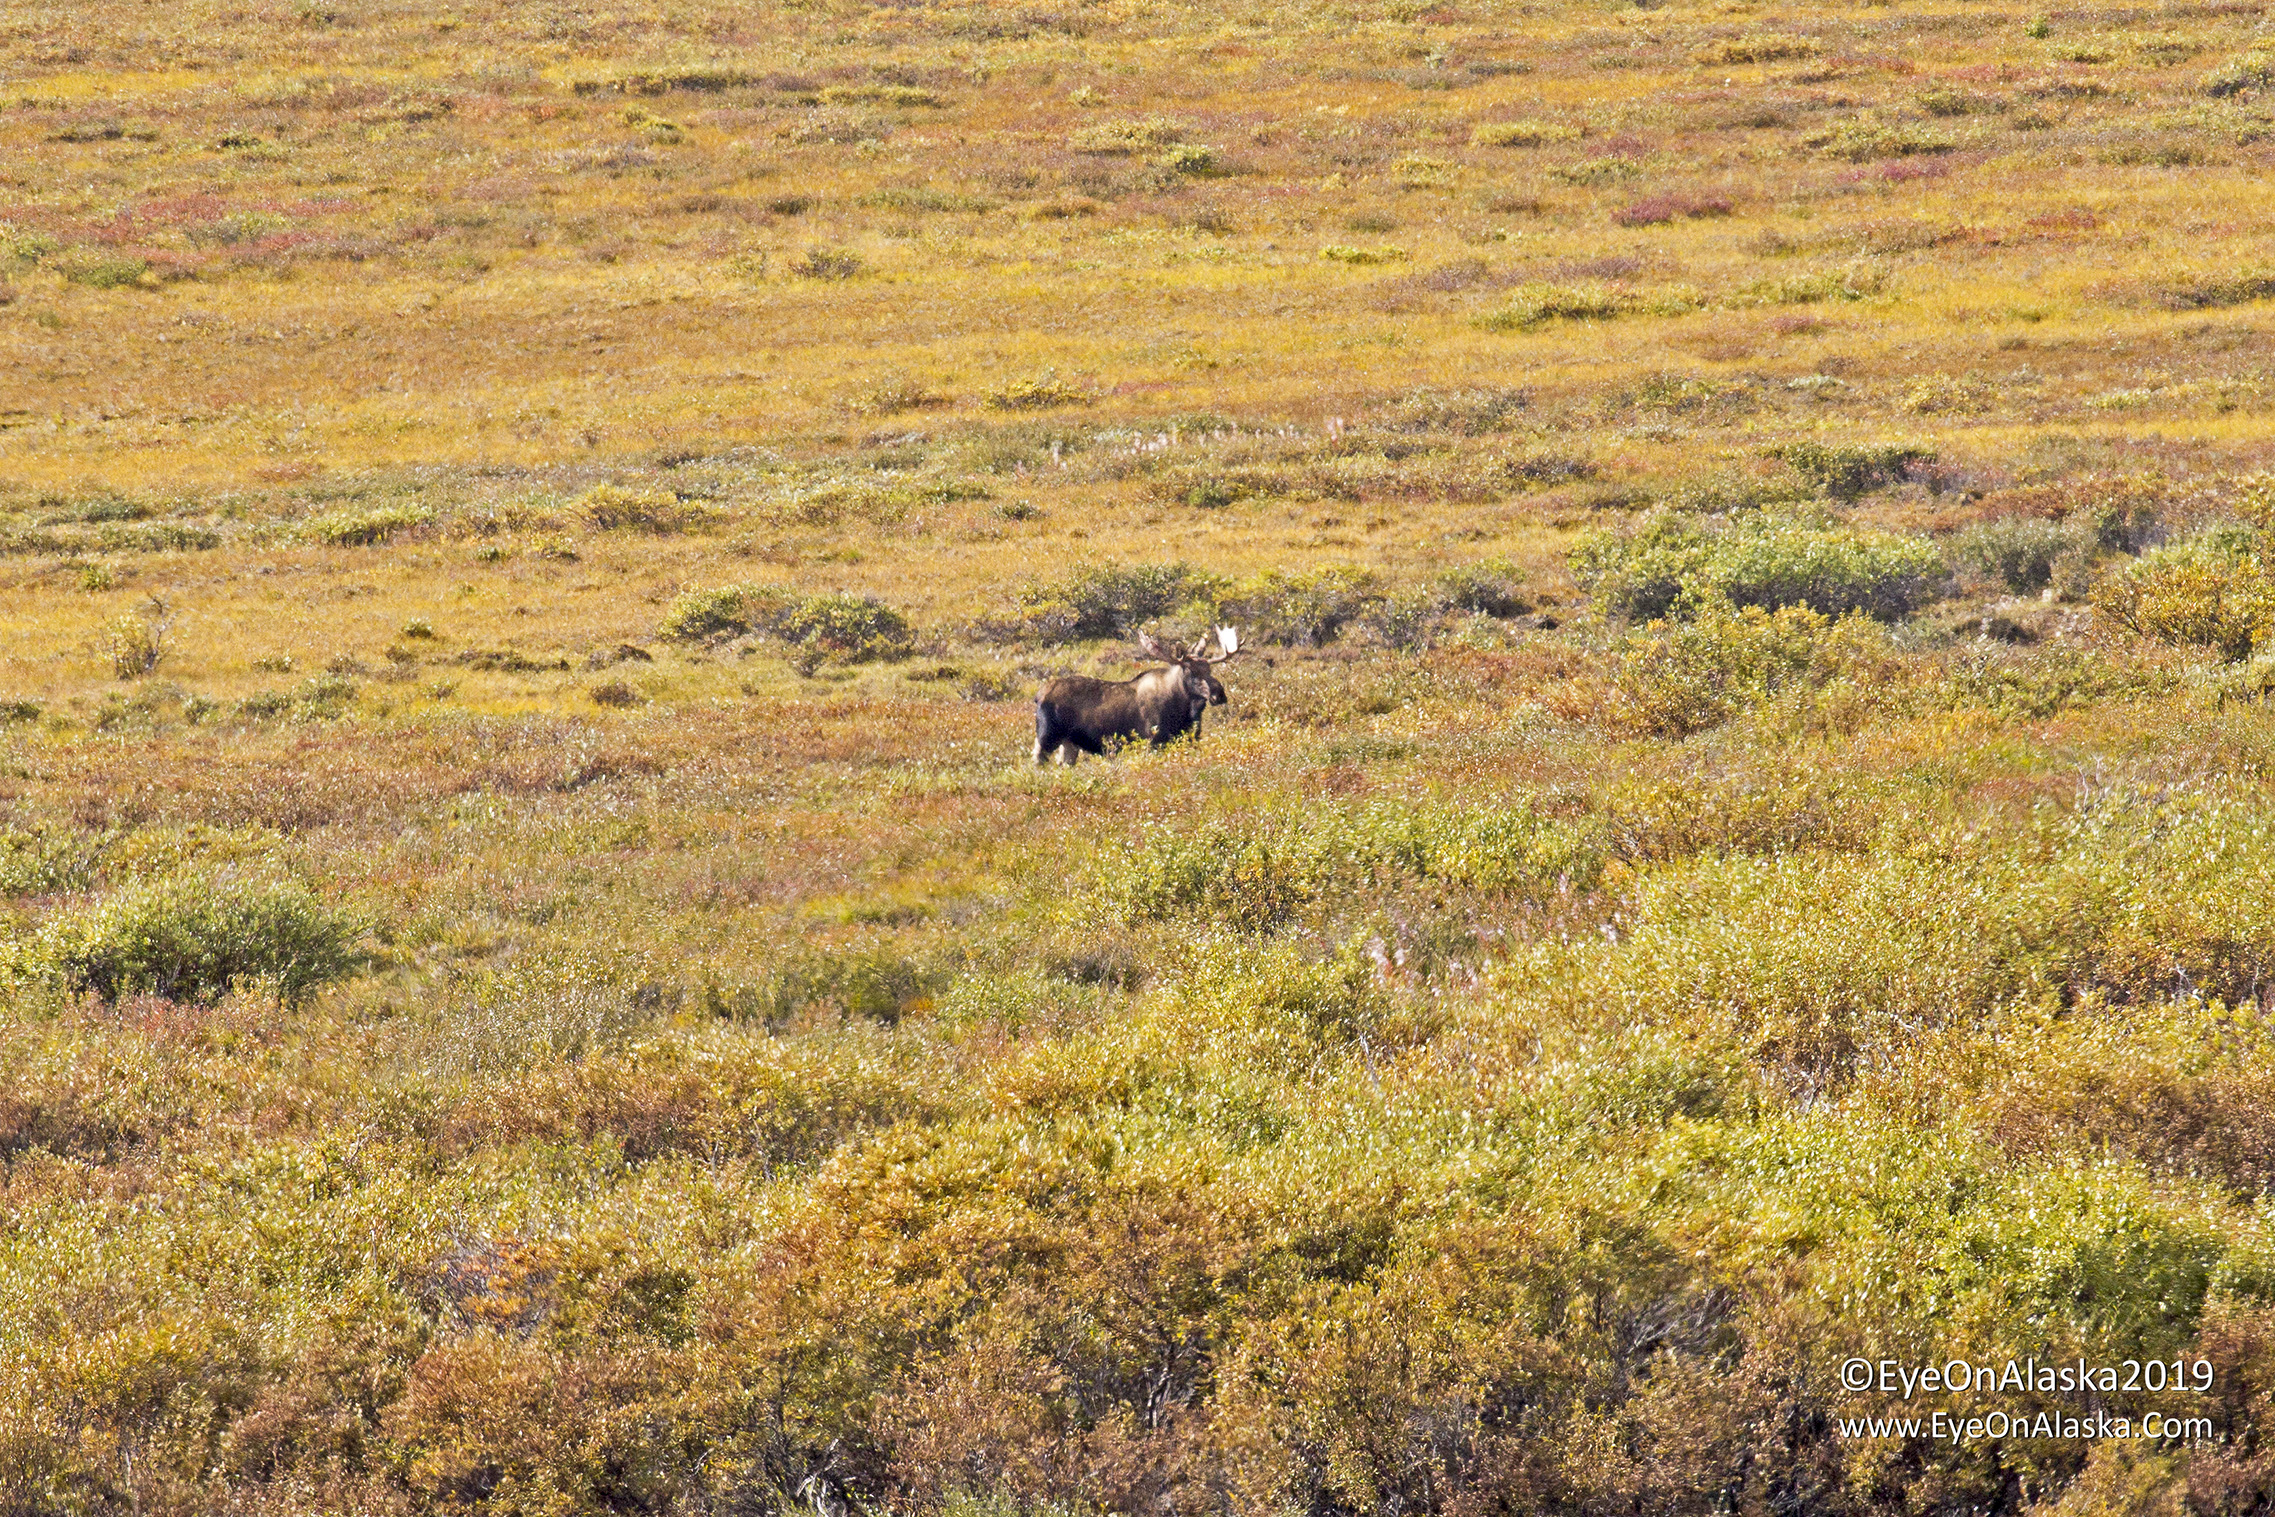 We biked from the top of Polychrome Pass to the Toklat River.  Saw this huge bull moose on the Plains of Murie.  He had two cows near him, so he's building his harem during the rutting season.